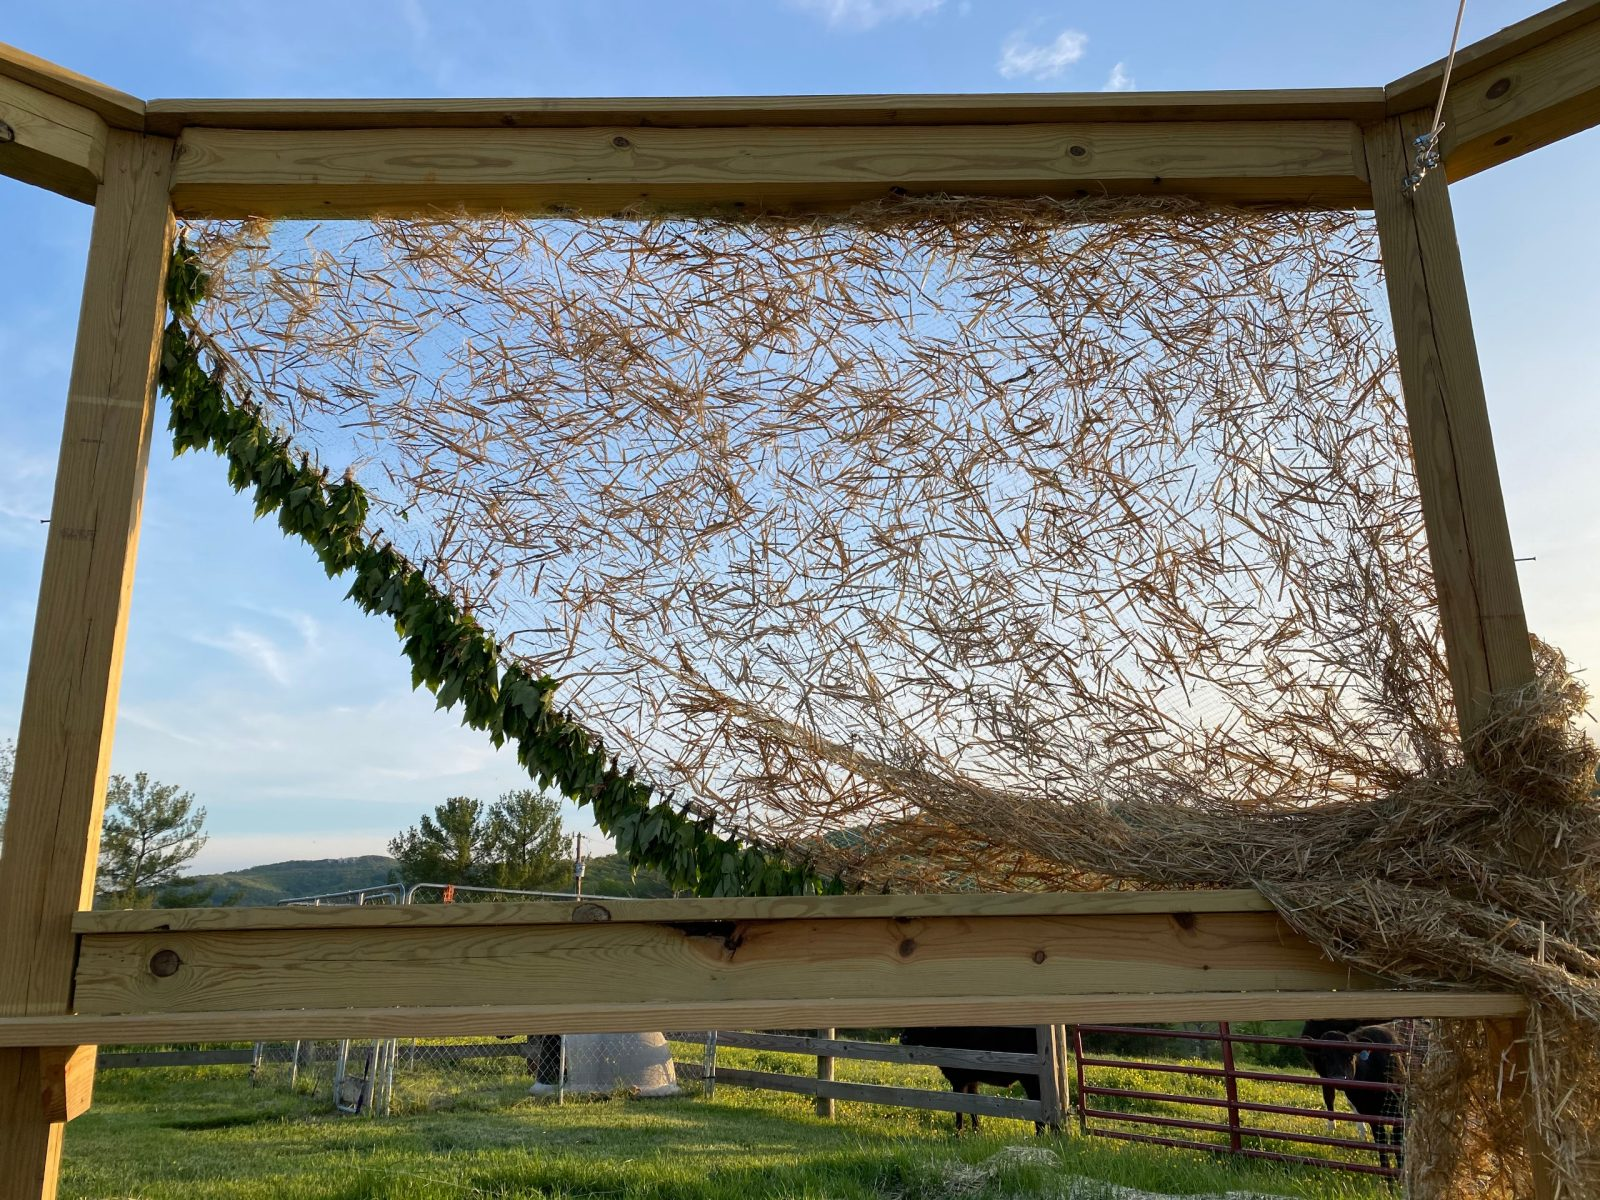 A wooden structure with an attached curtain made of hay and leaves